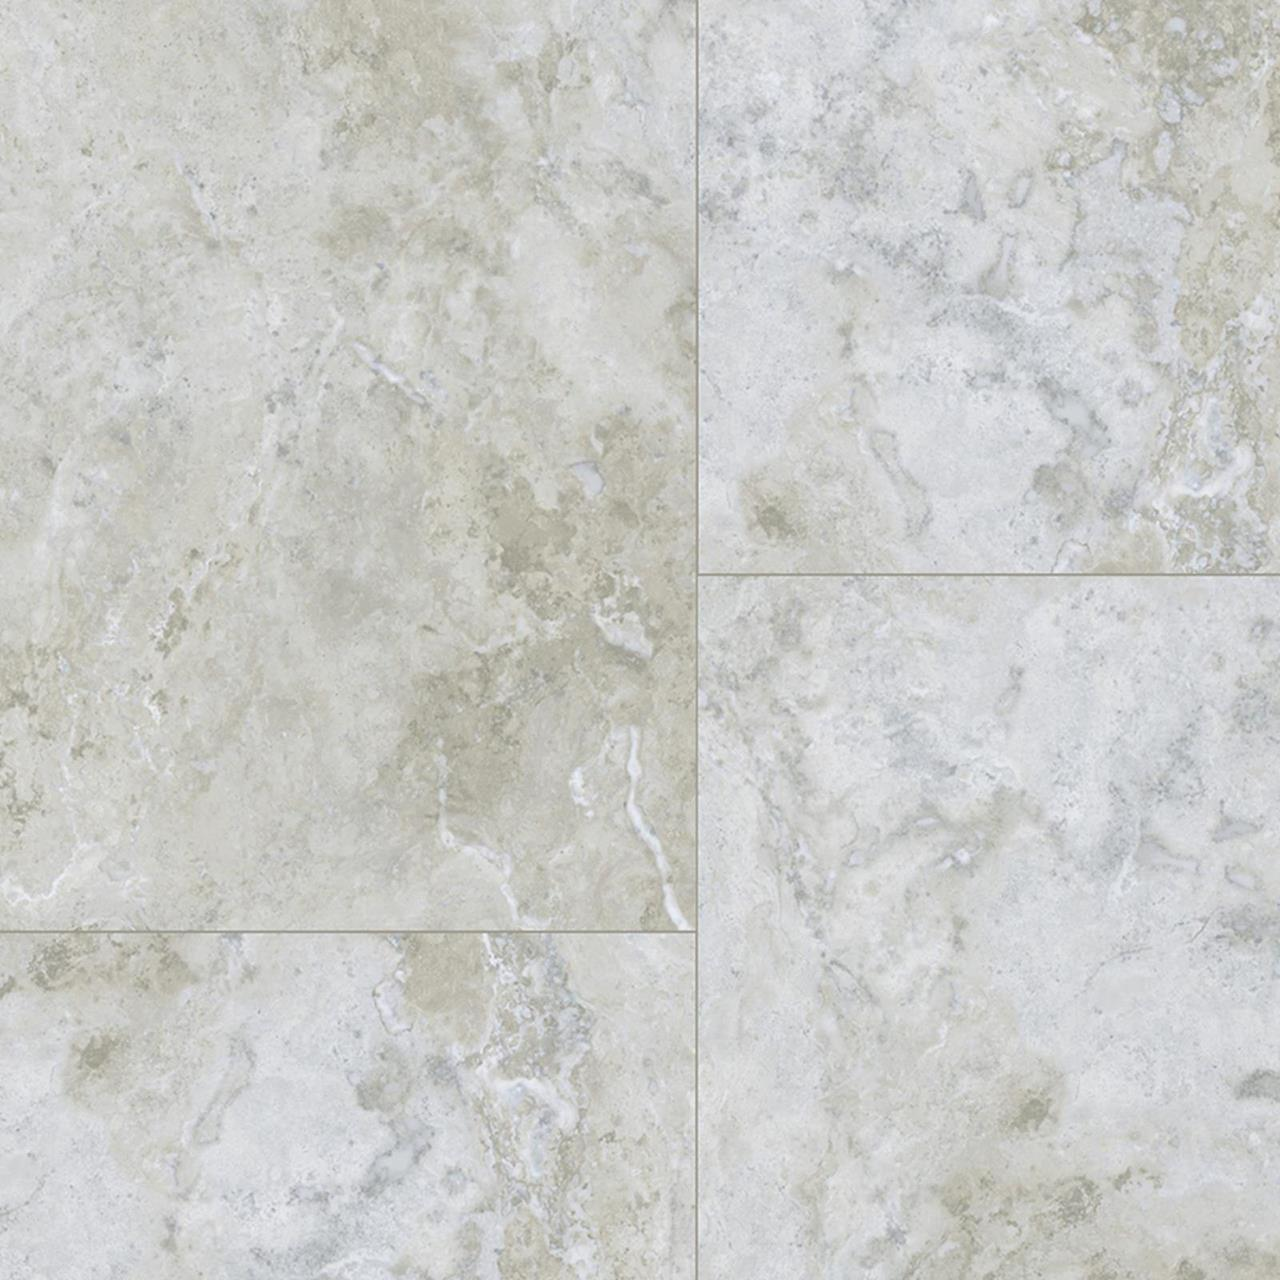 Mohawk Pergo Extreme Tile Options Pt004 997 Imperial Silver 12 X